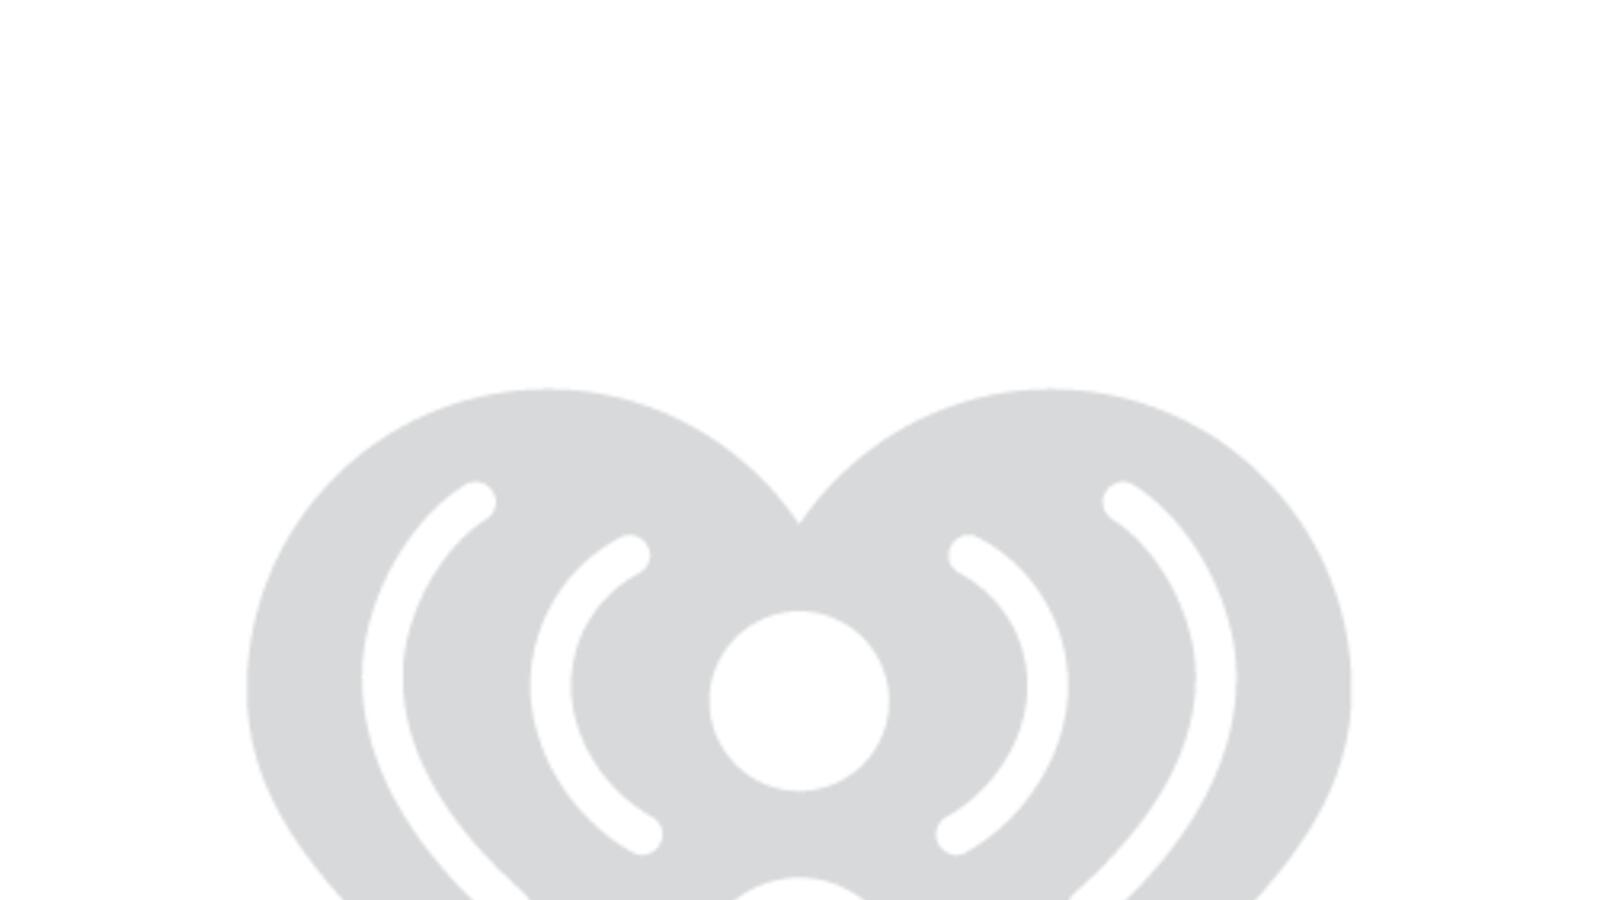 """Mike Peterson and the """"Kids First"""" school board slate for Douglas County"""